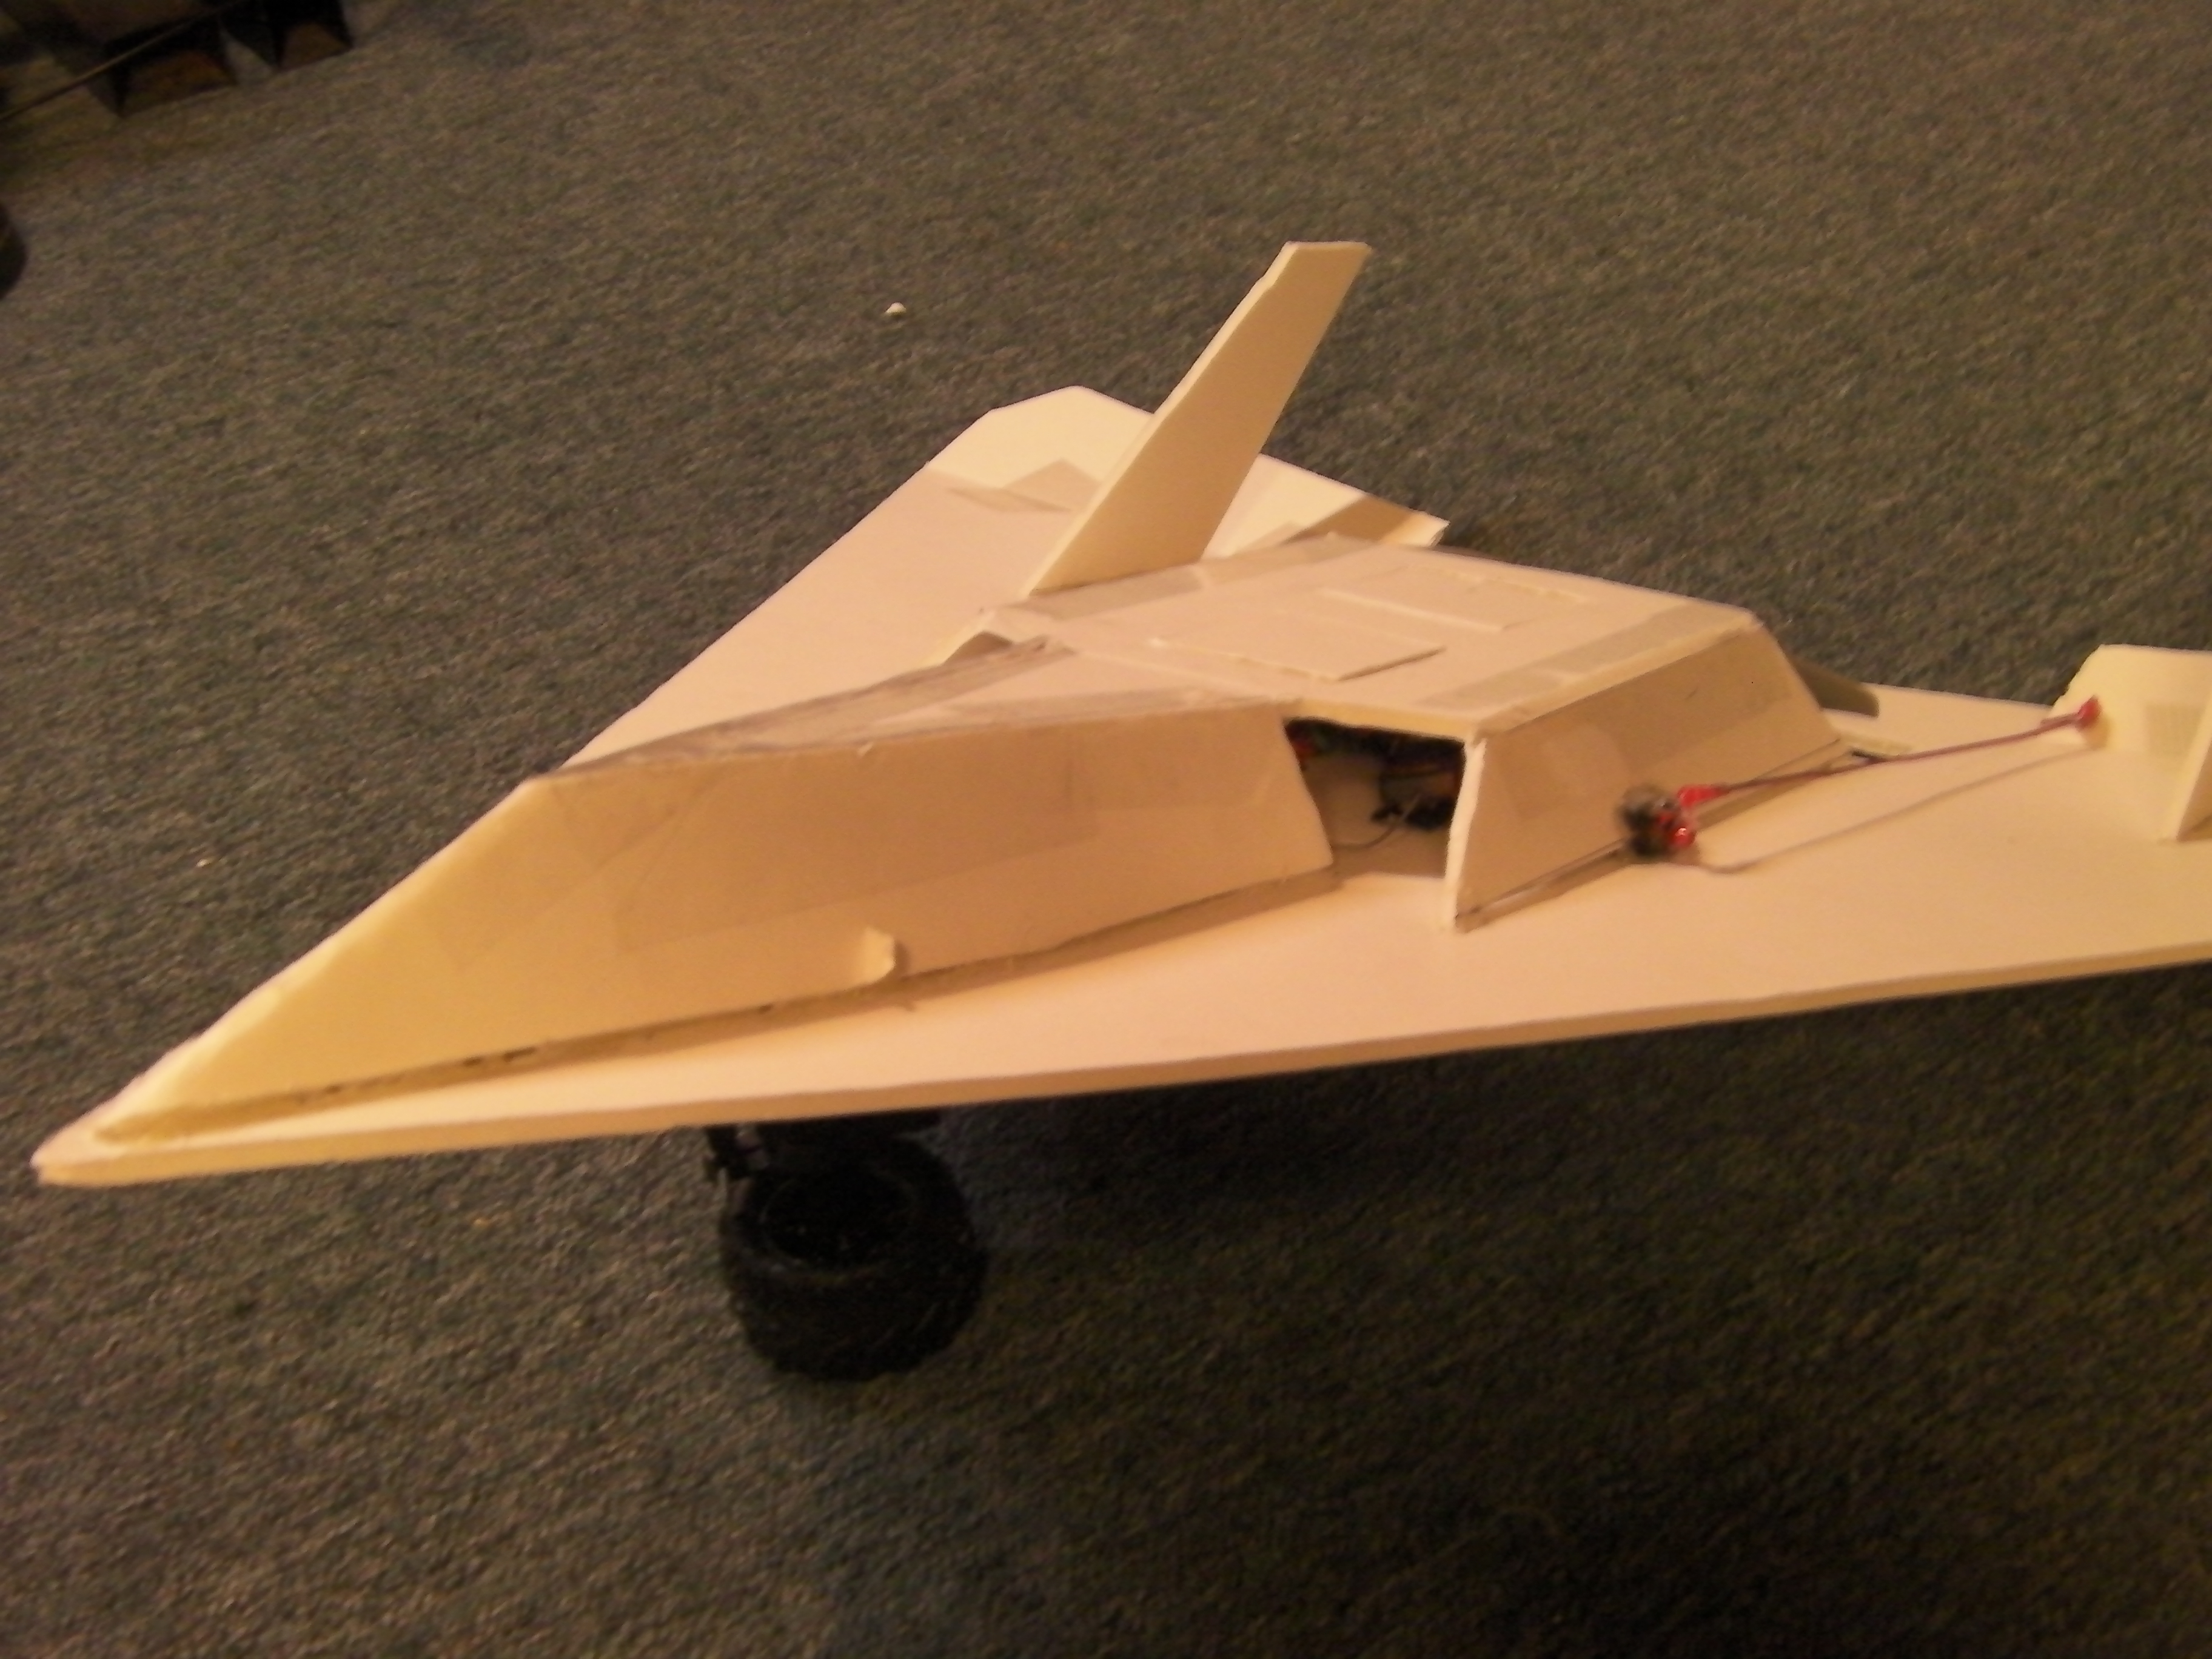 Scratch Built Delta Wing RC Plane